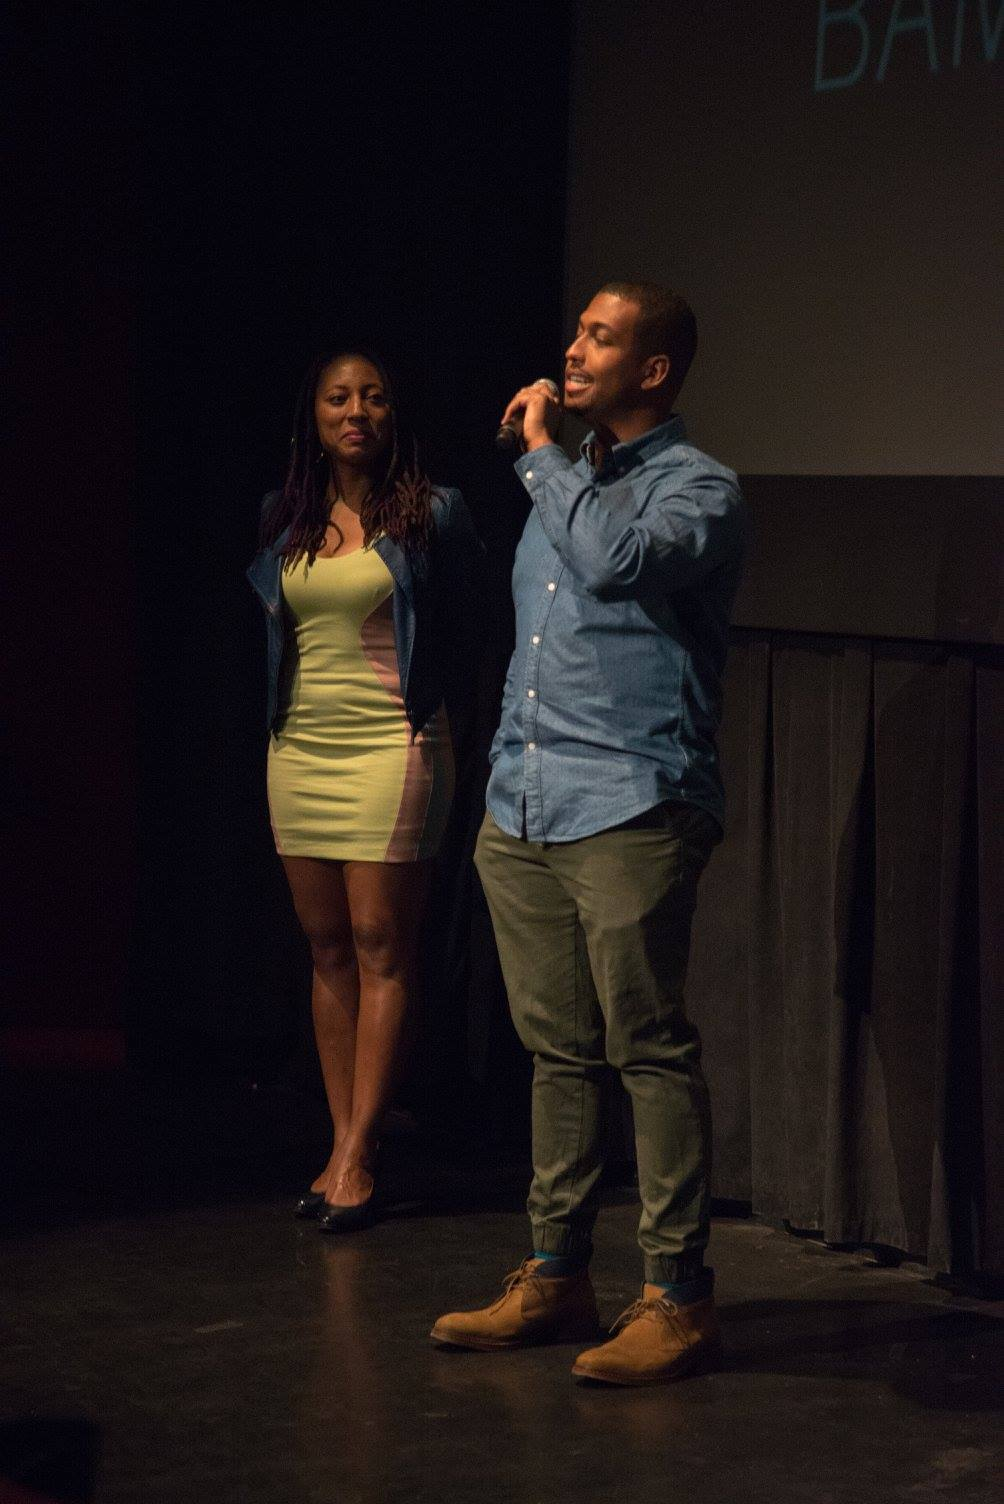 Nigerian film director Iquo B. Essien screens New York, I Love You at the New Voices in Black Cinema Festival at Brooklyn Academy of Music.